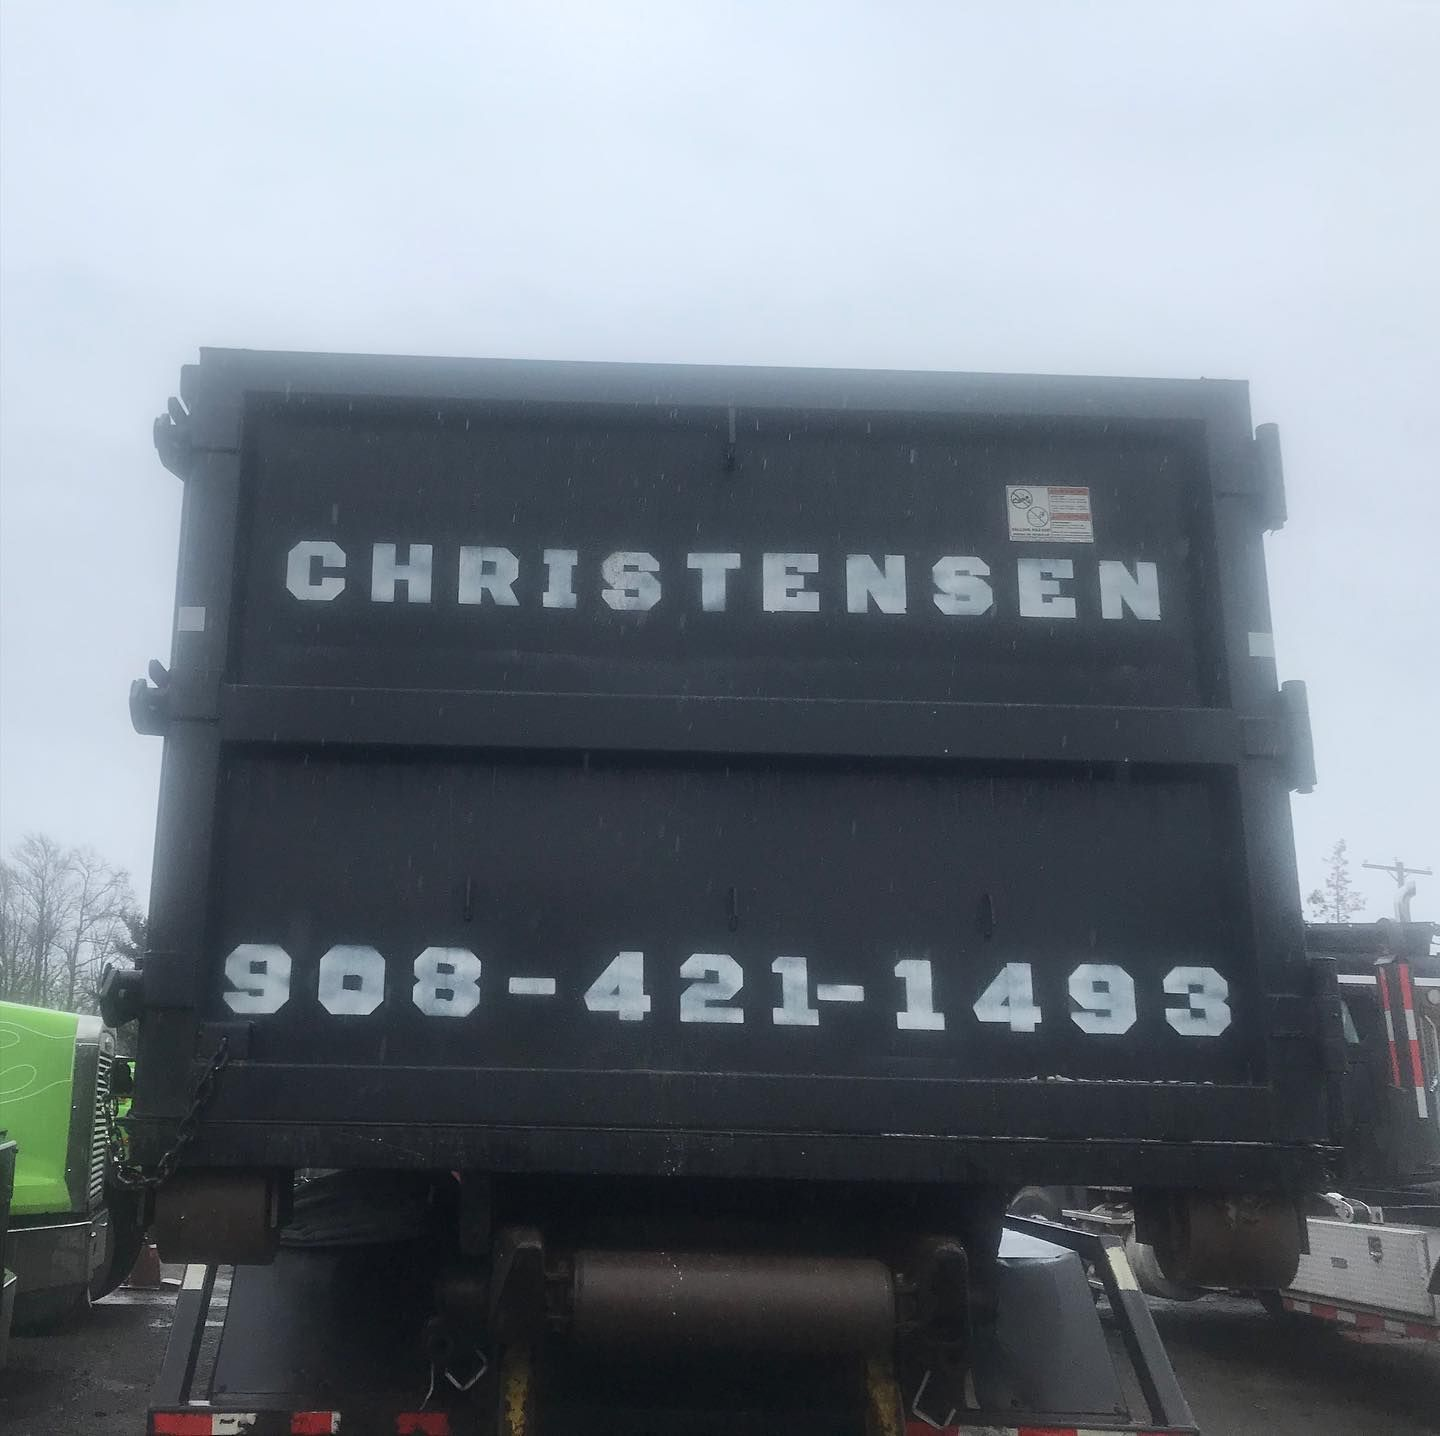 Whether You Re Landscaping Cleaning Or Rebuilding Your Home Christensen Recycling Provides Debris Hauling Services To Keep Your Yard Clean Call 908 421 14 In 2020